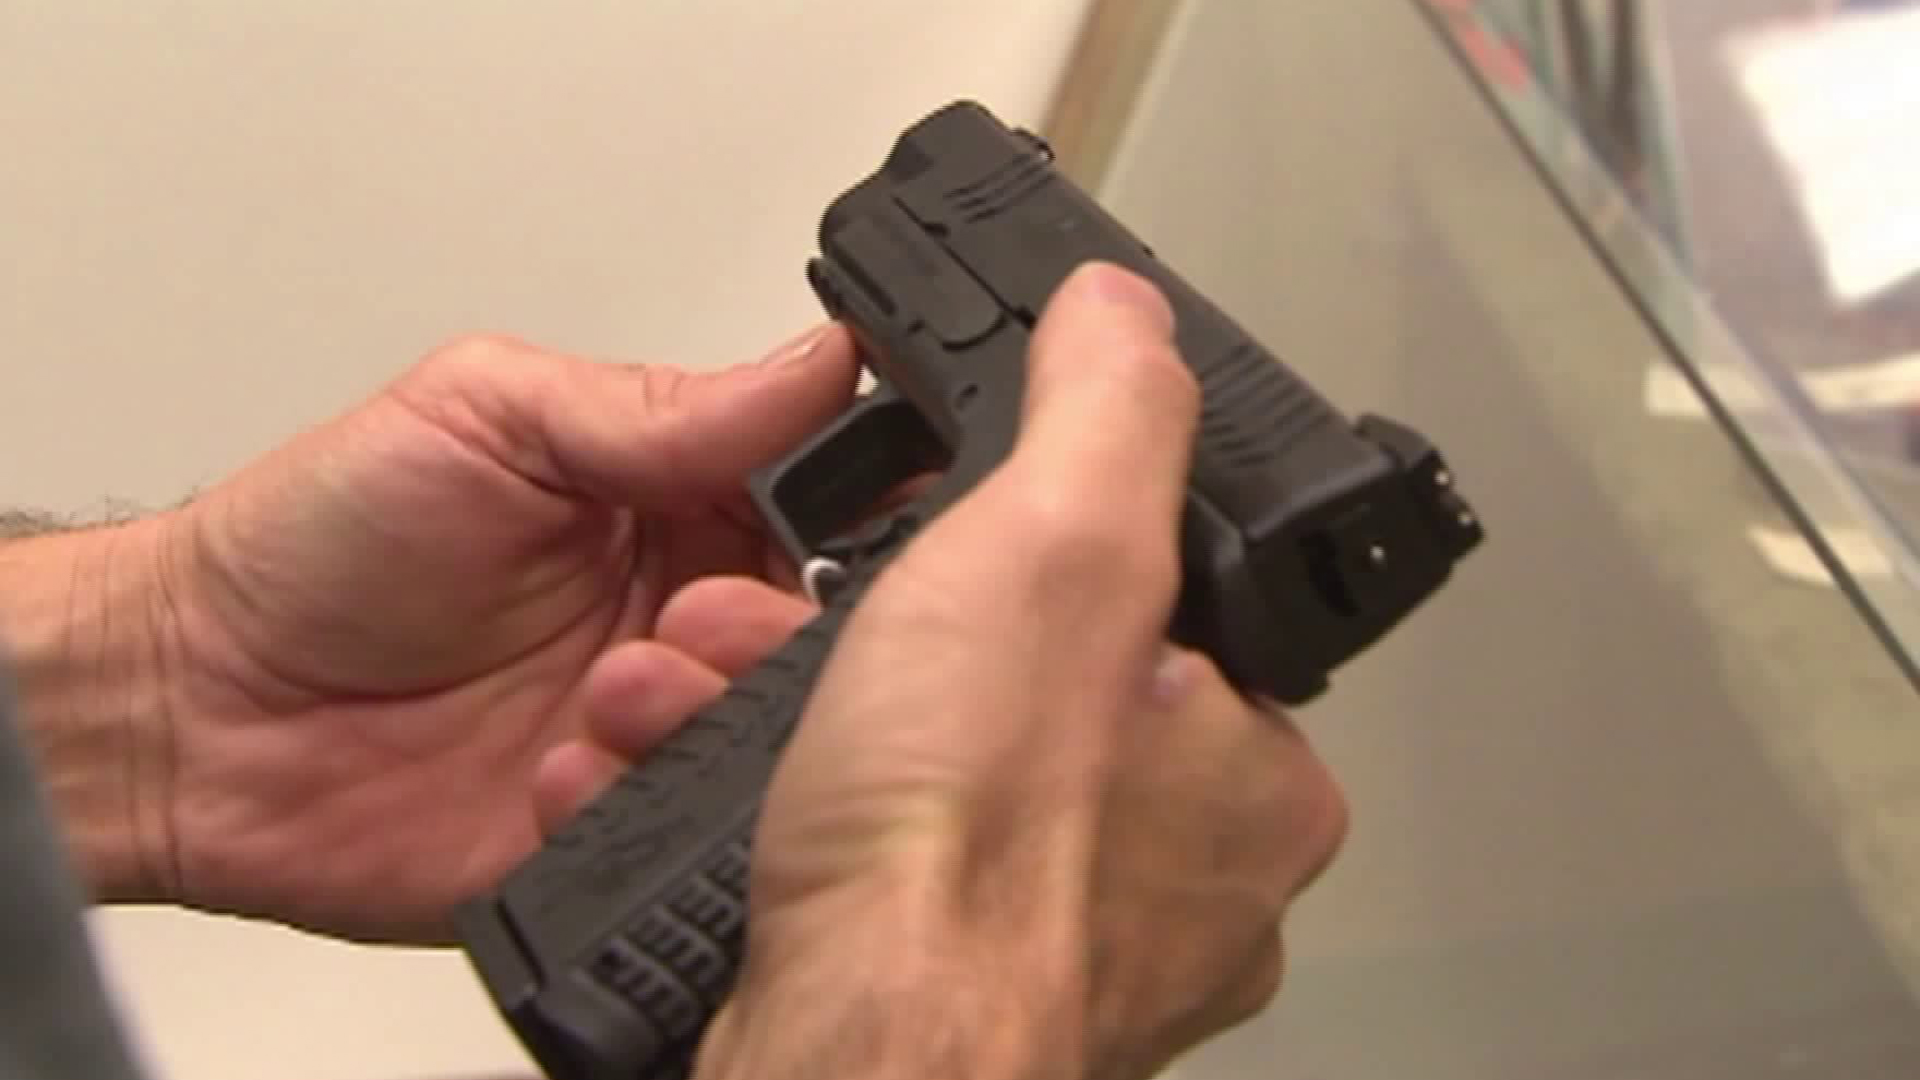 A handgun is seen in this file photo. (Credit: KTLA)